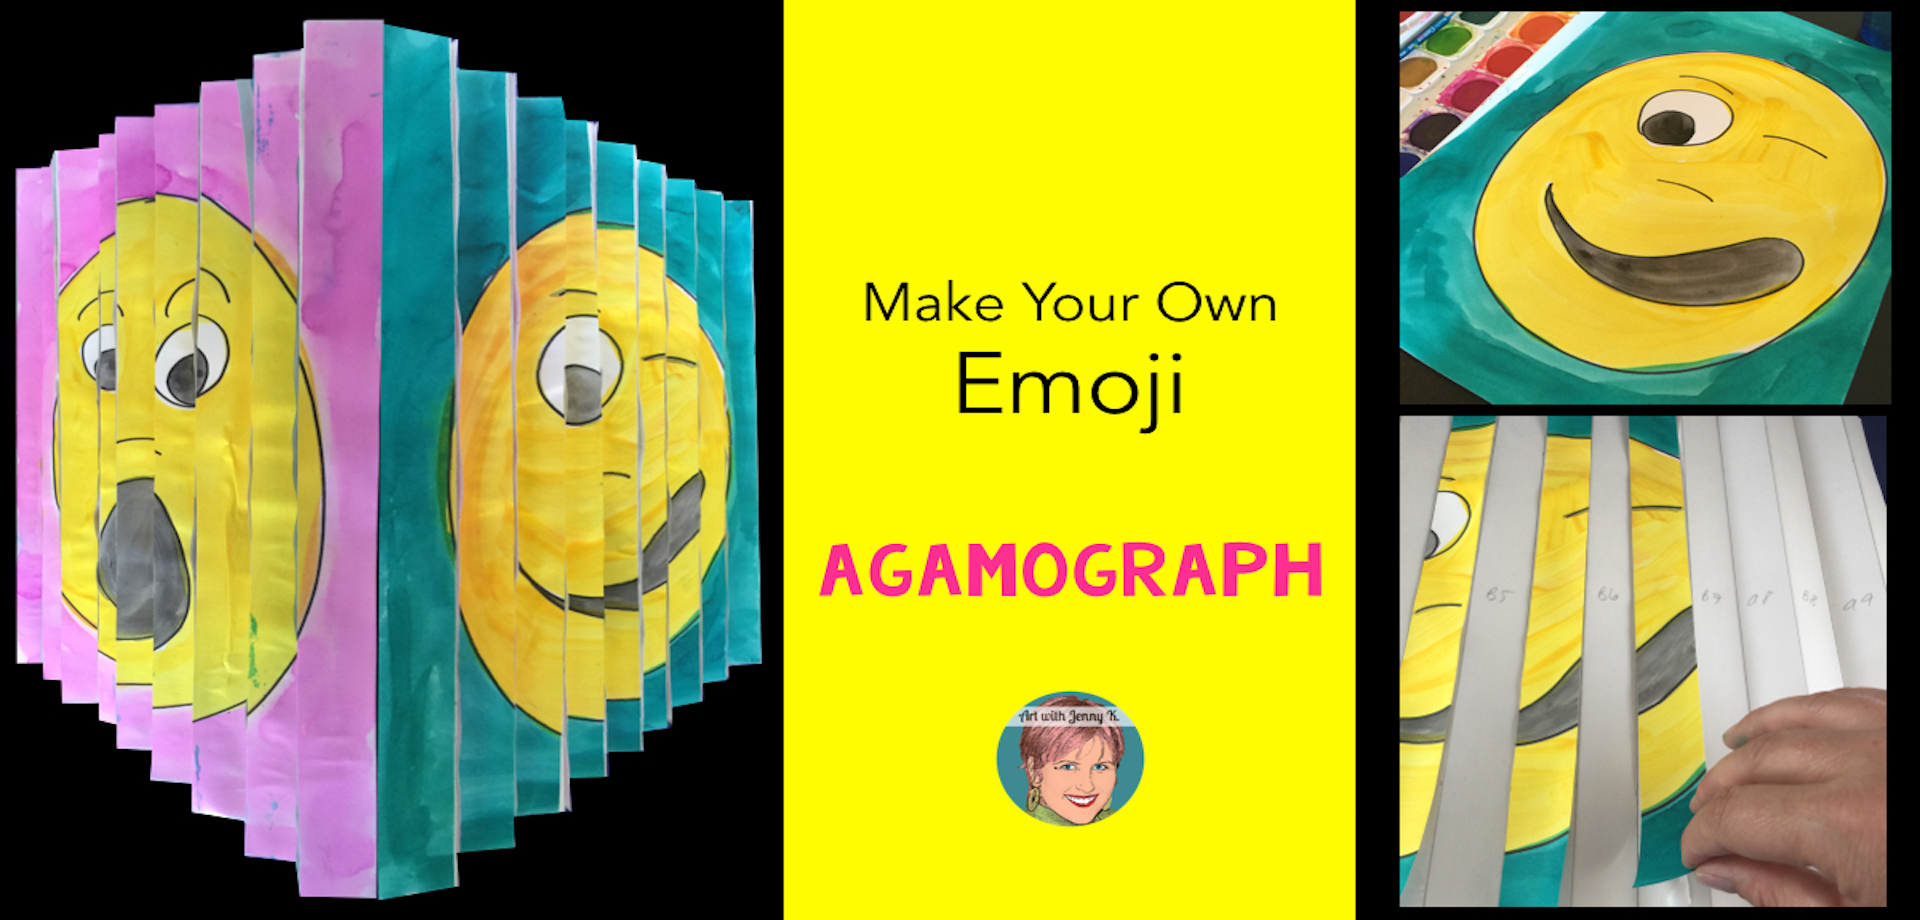 how to make your own emoji agamograph  video tutorial